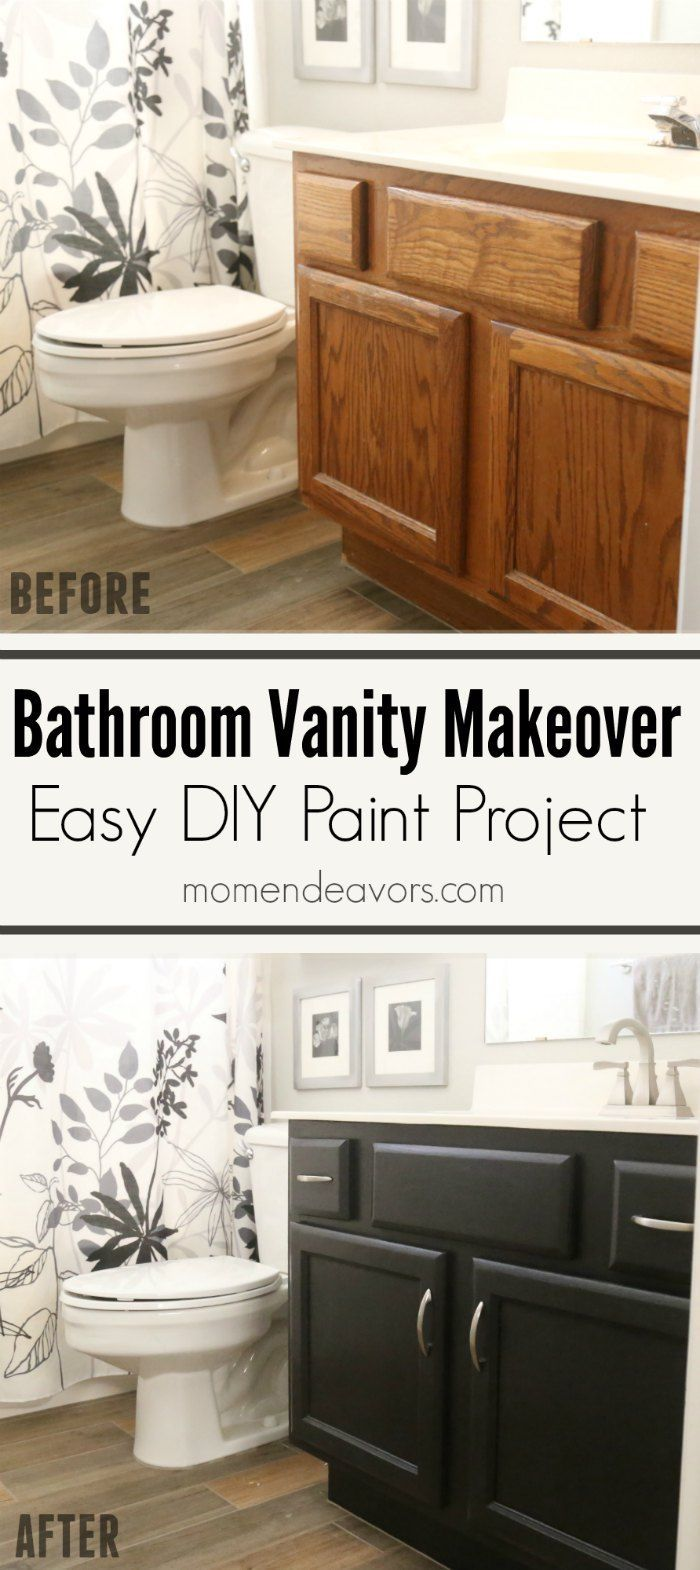 bathroom vanity makeover easy diy home paint project paint suggestions and easy diy tutorial - Bathroom Cabinets Before And After